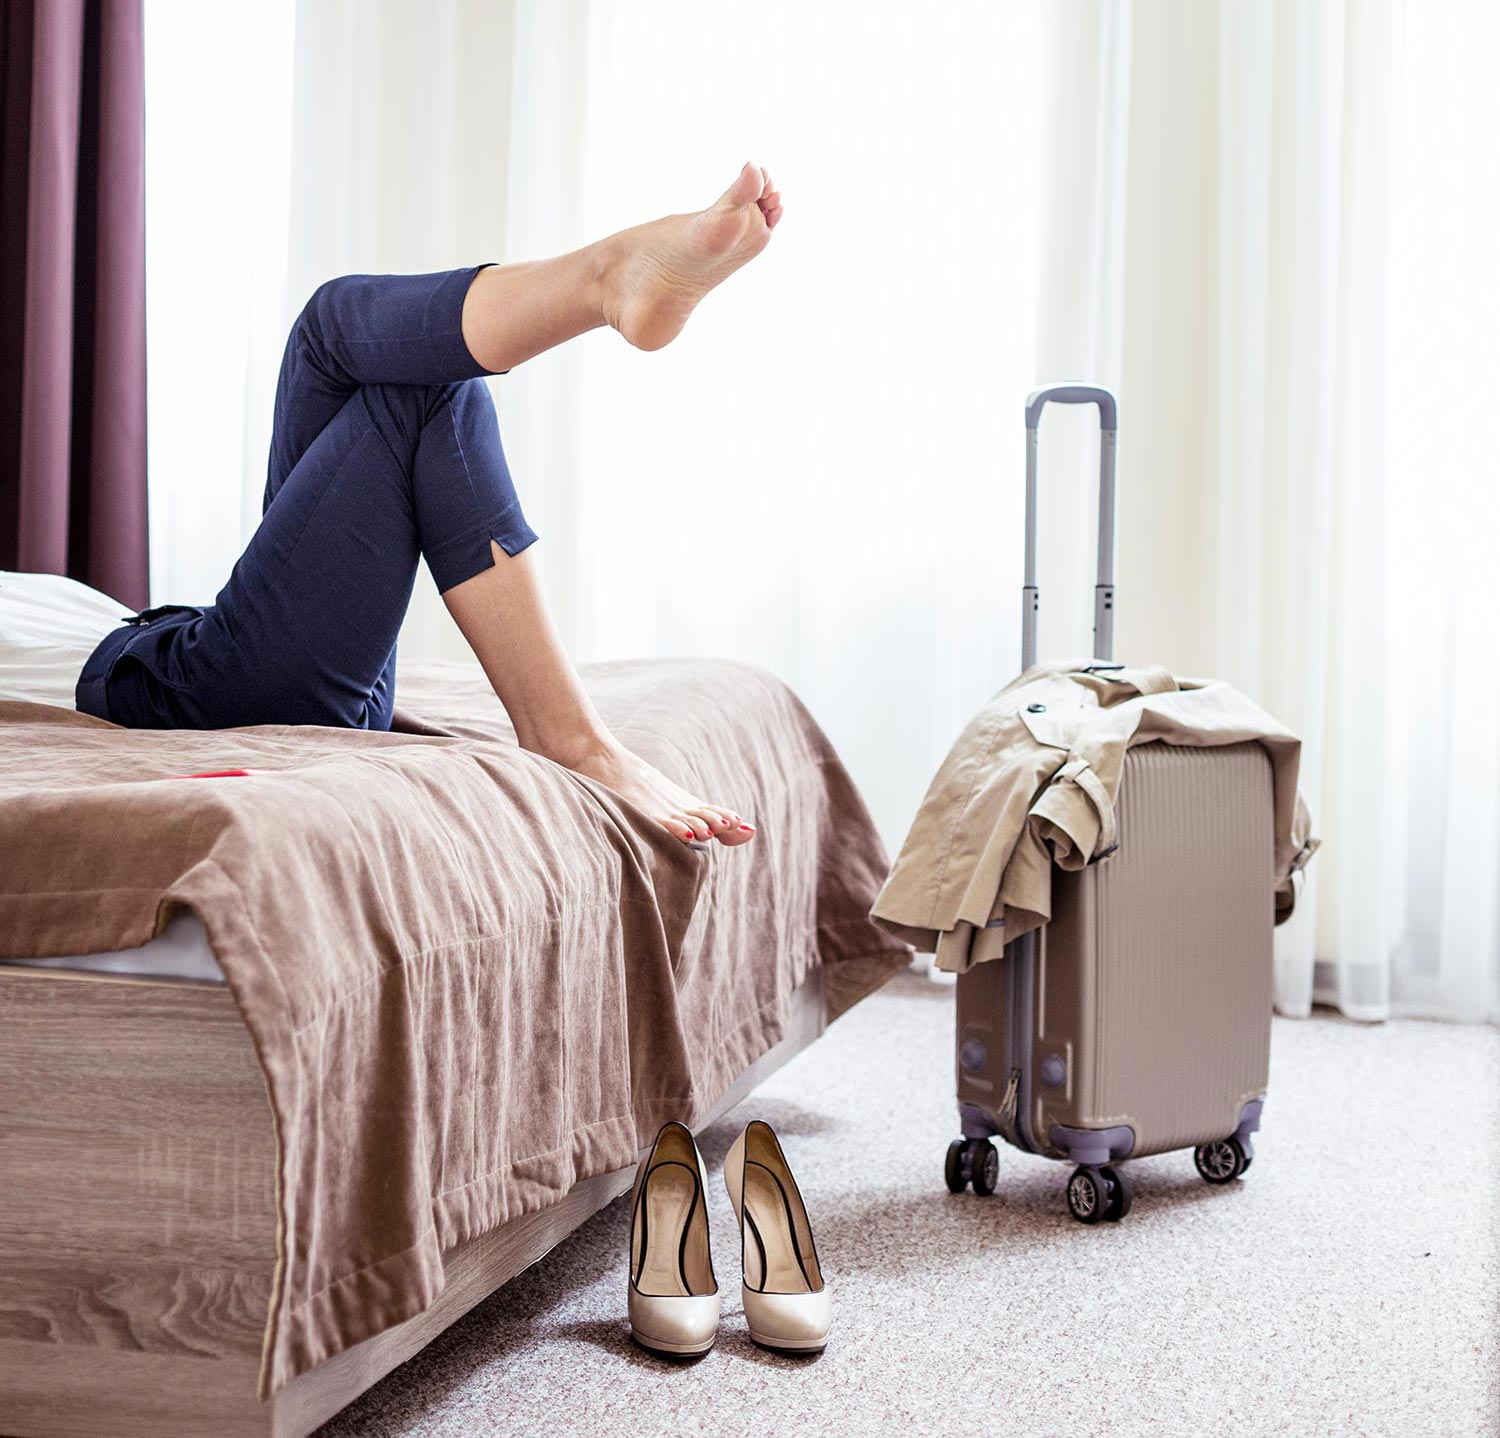 woman hotelroom suitcase